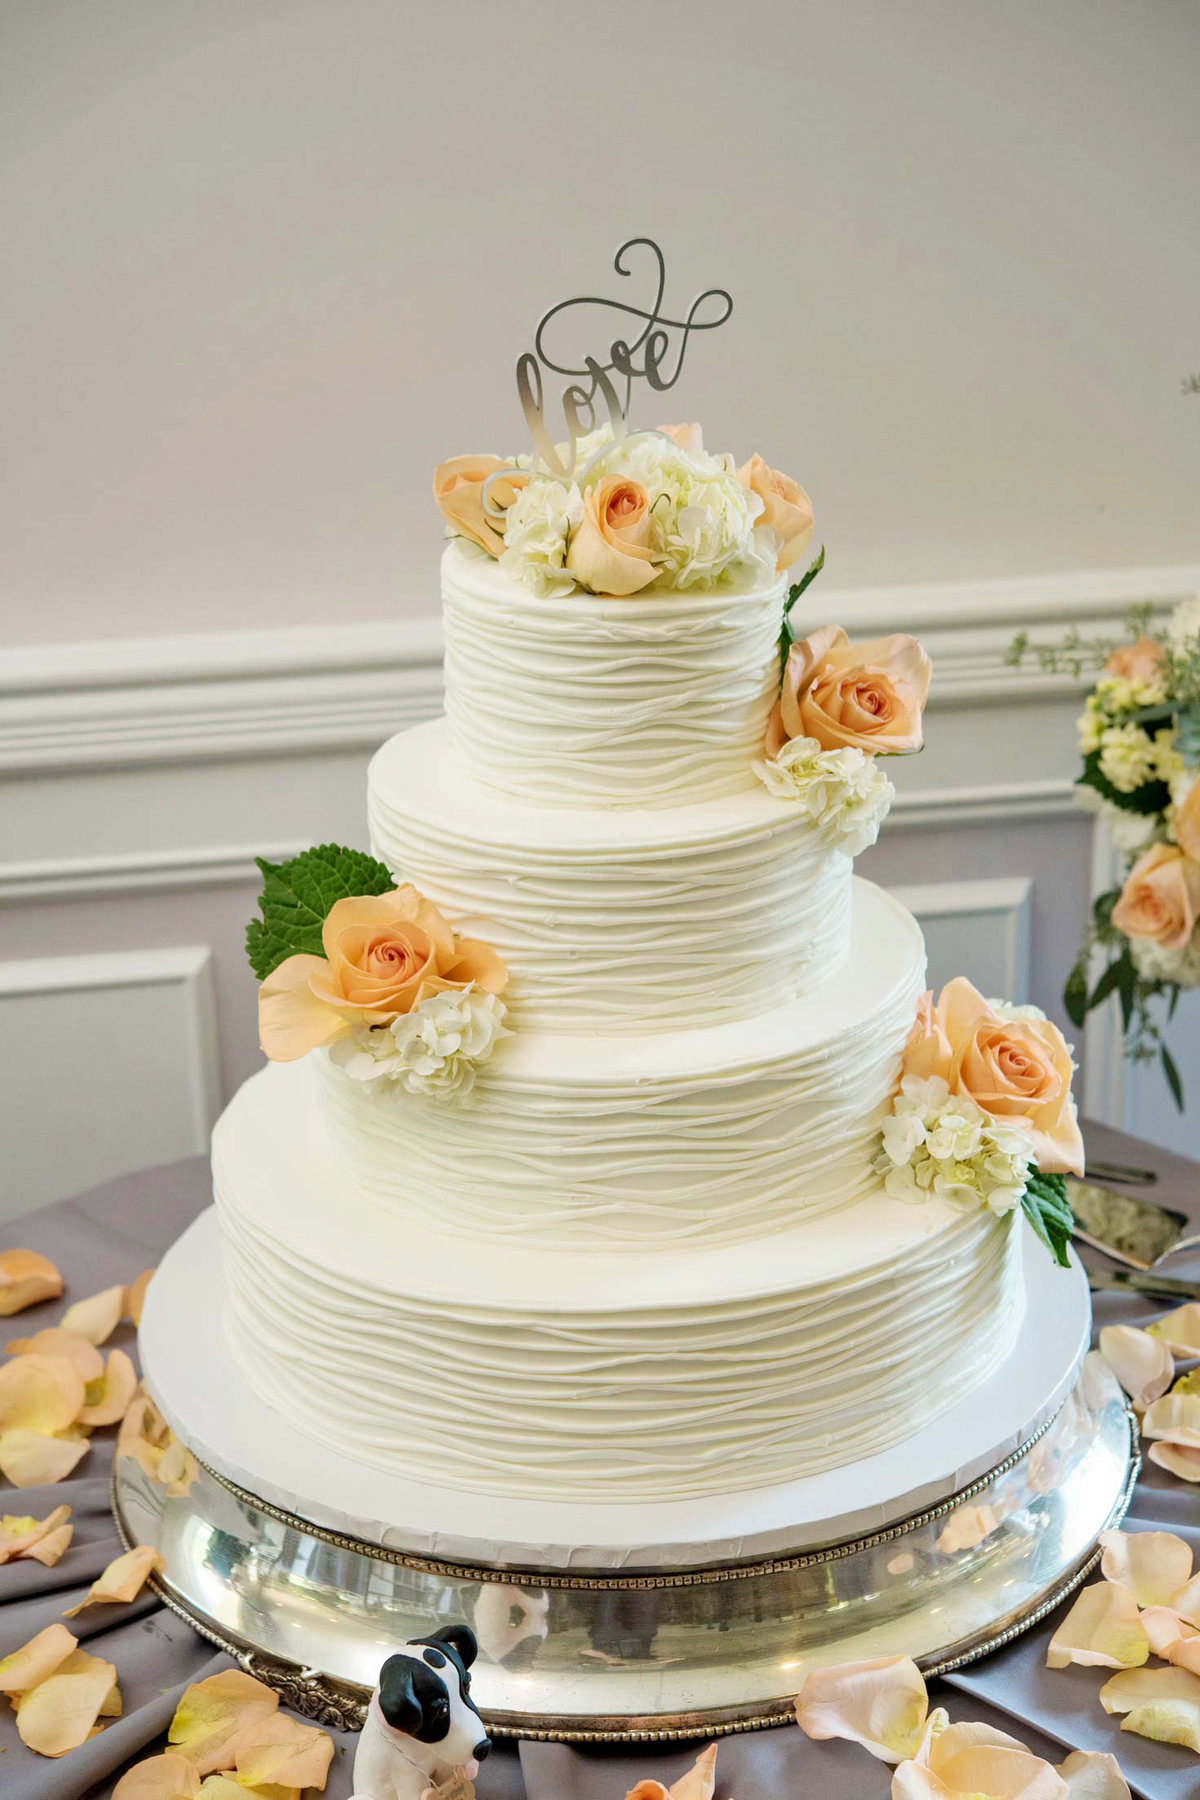 White wedding cake with flowers at Flowerfield